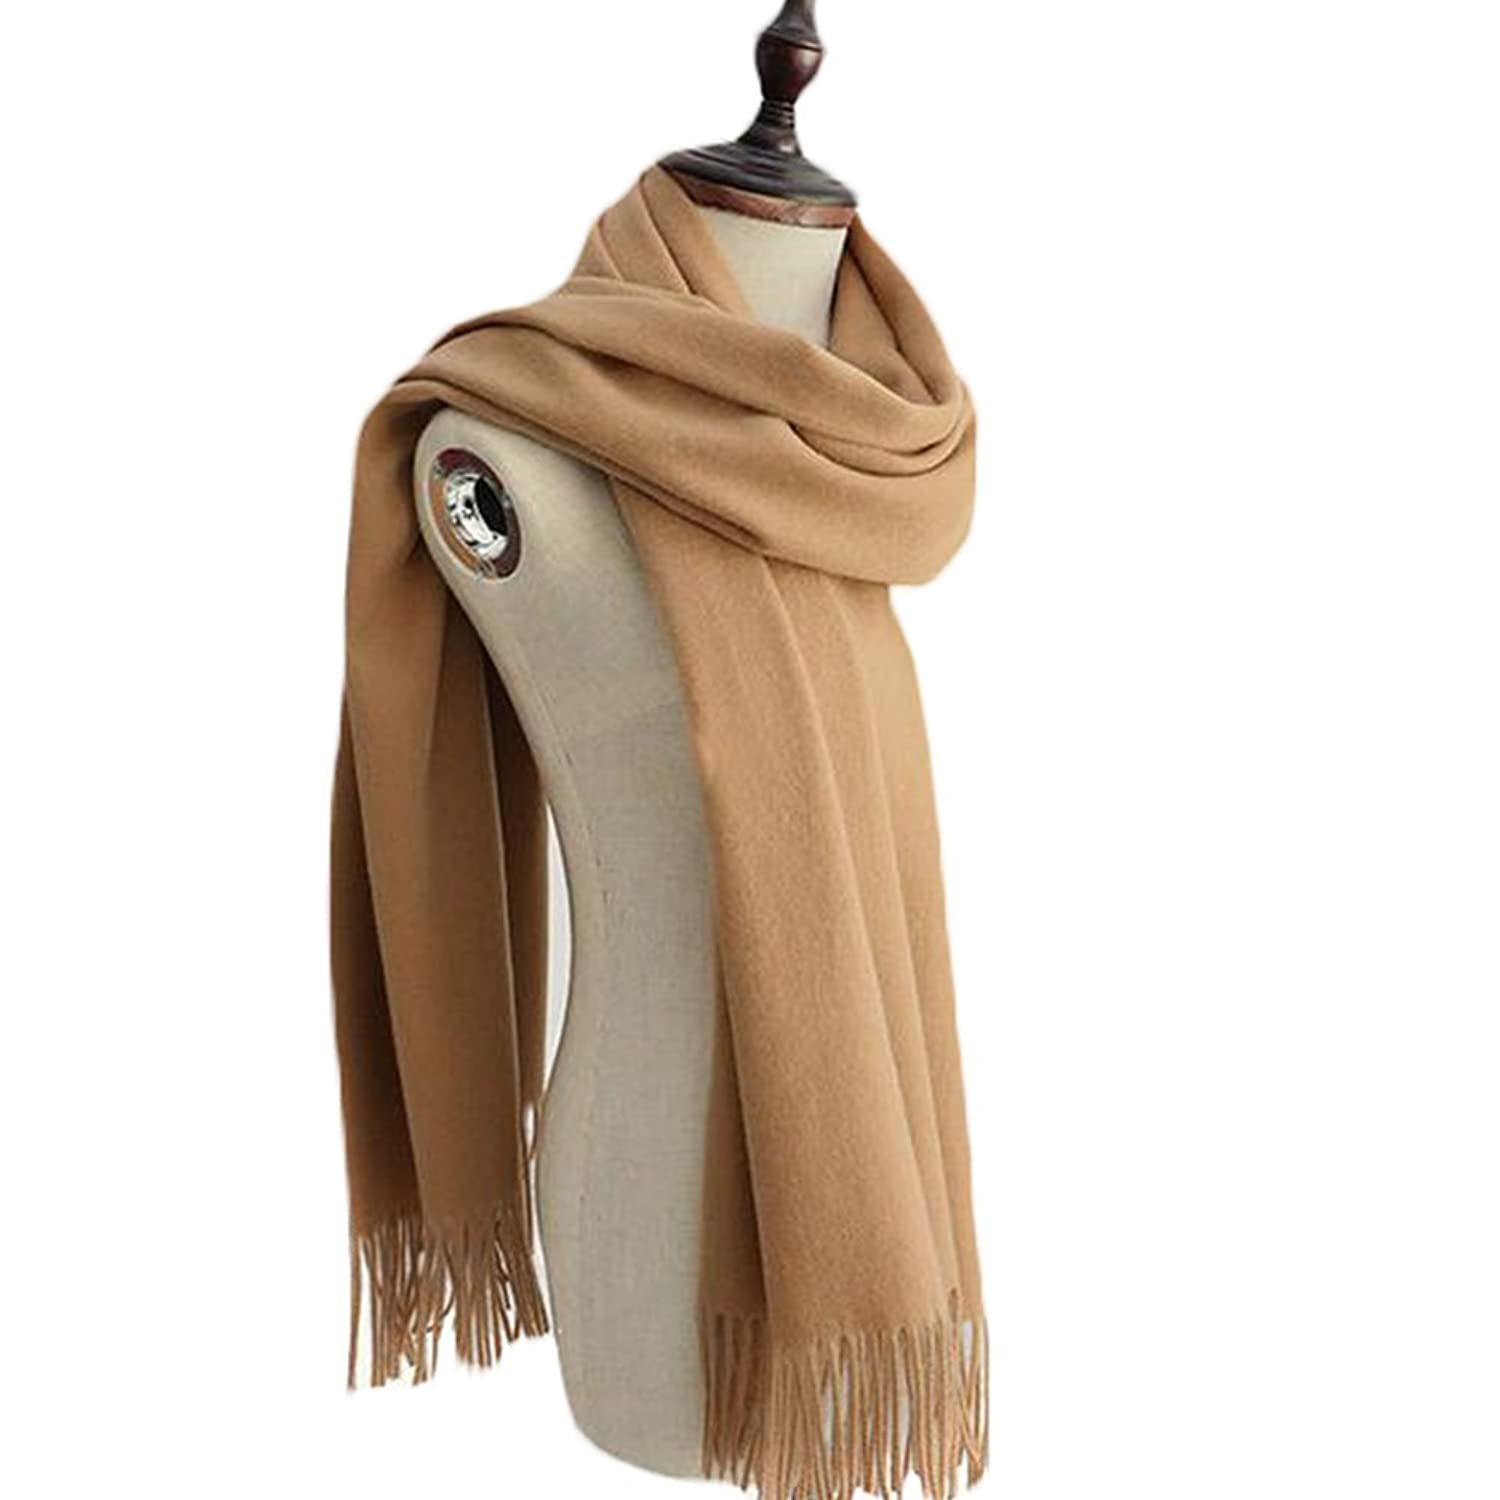 XHSP 100% Cashmere Women Autumn Winter Long Scarf Fashion Fringed Scarves